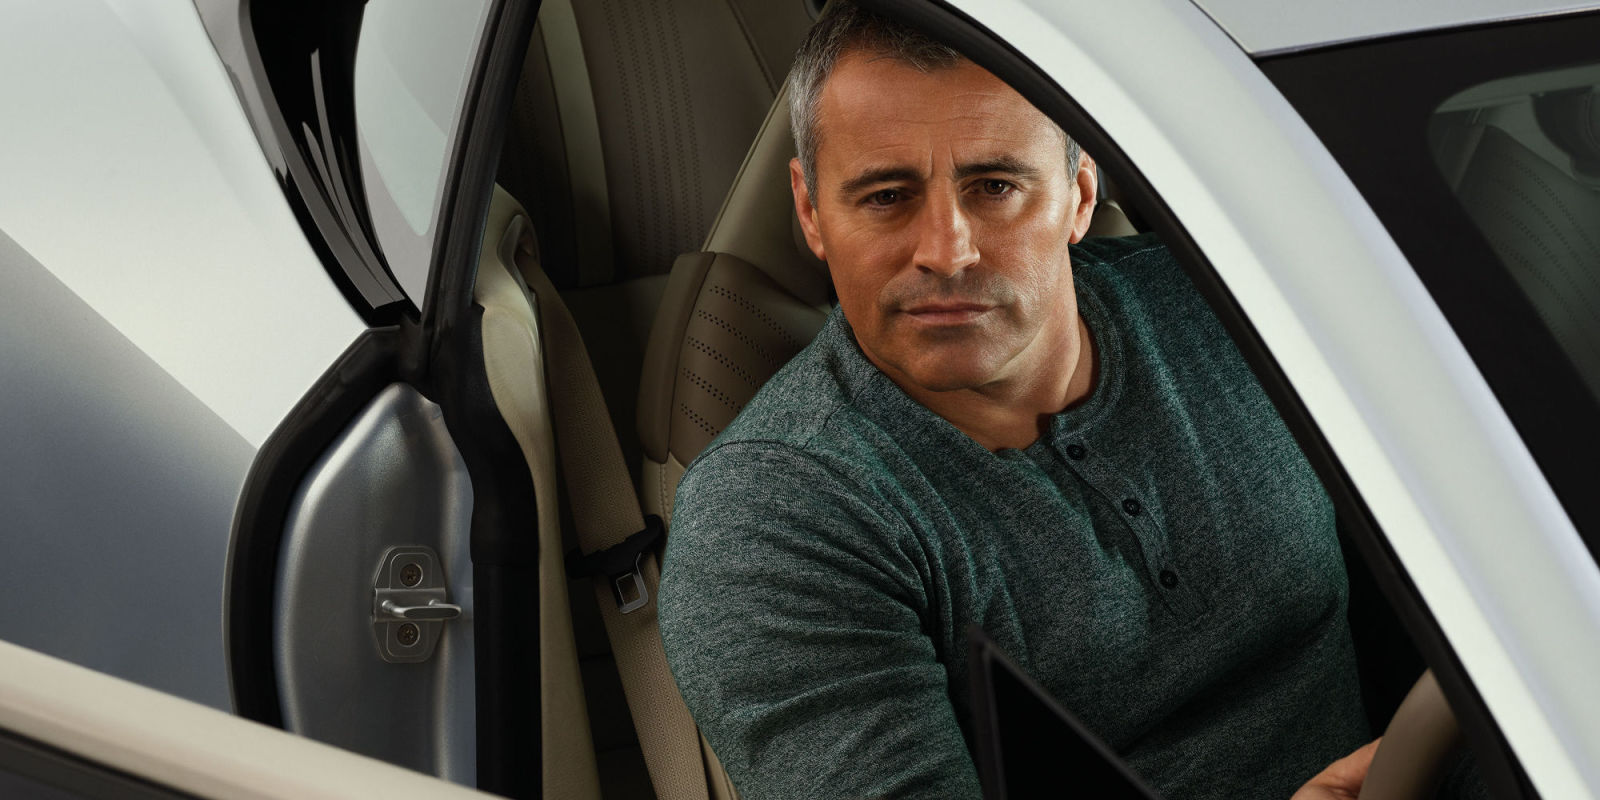 Former Top Gear presenters plan to launch their car show 05/13/2015 10